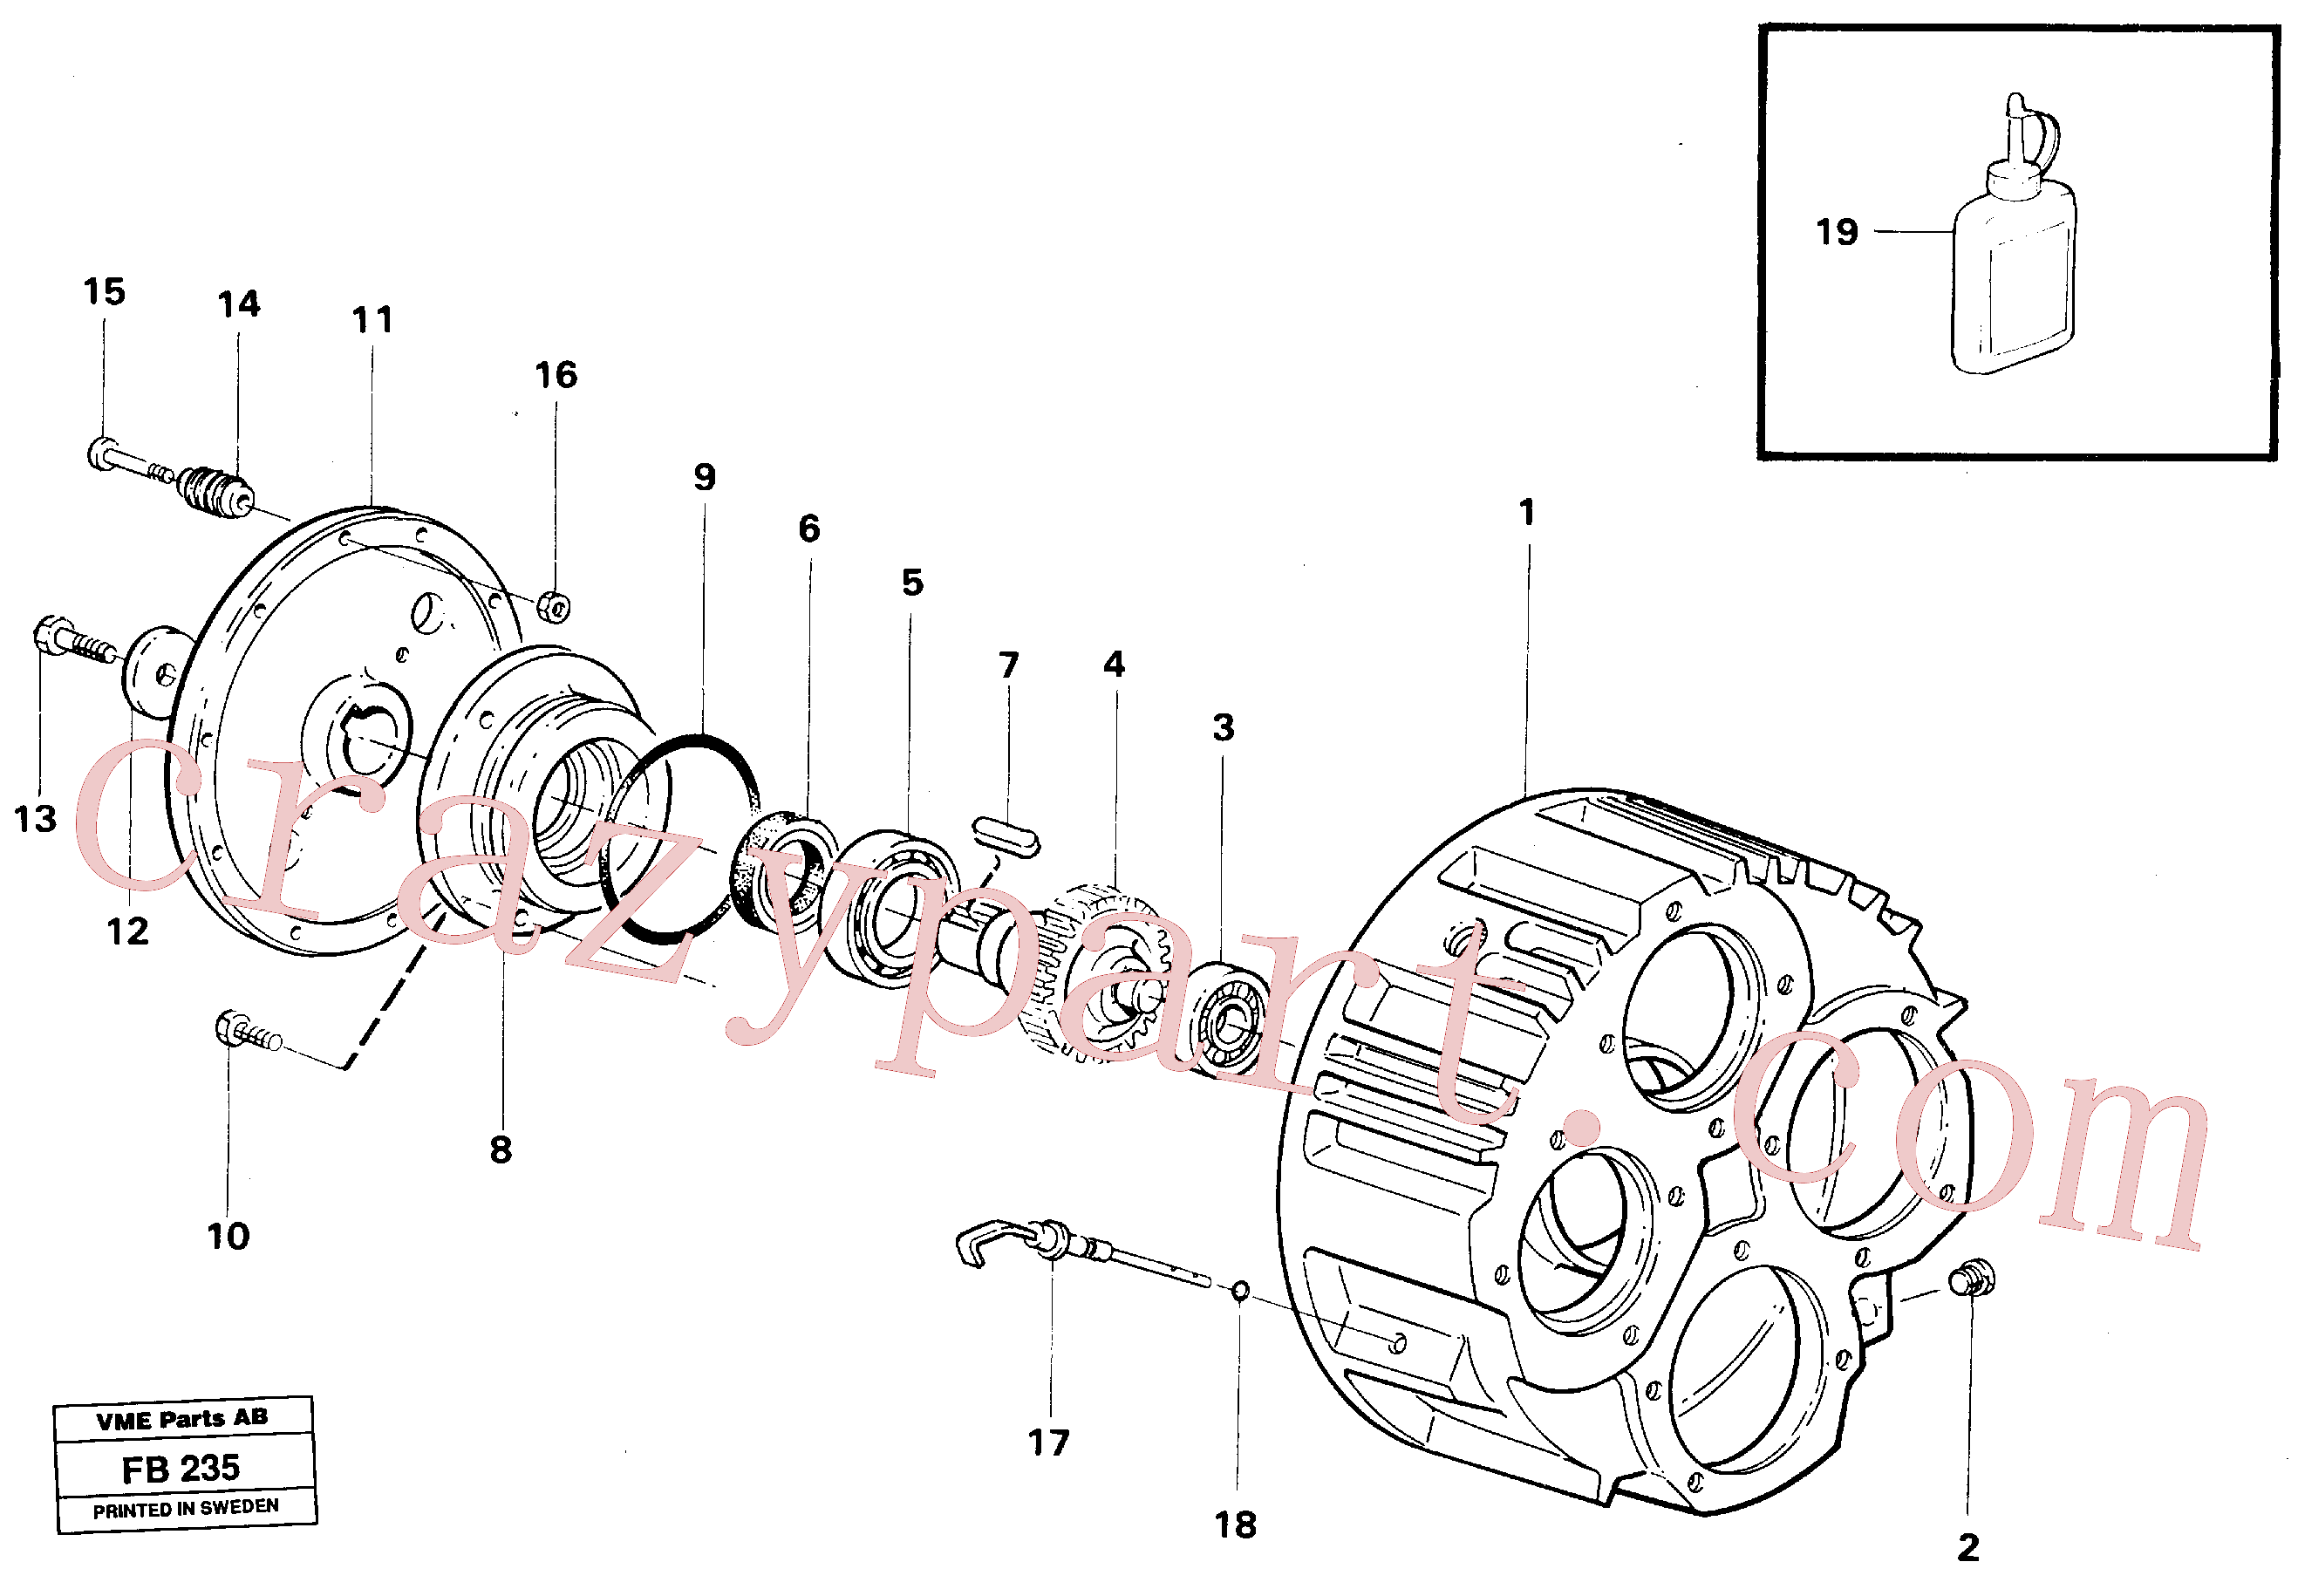 VOE14005061 for Volvo Pump gear box(FB235 assembly)